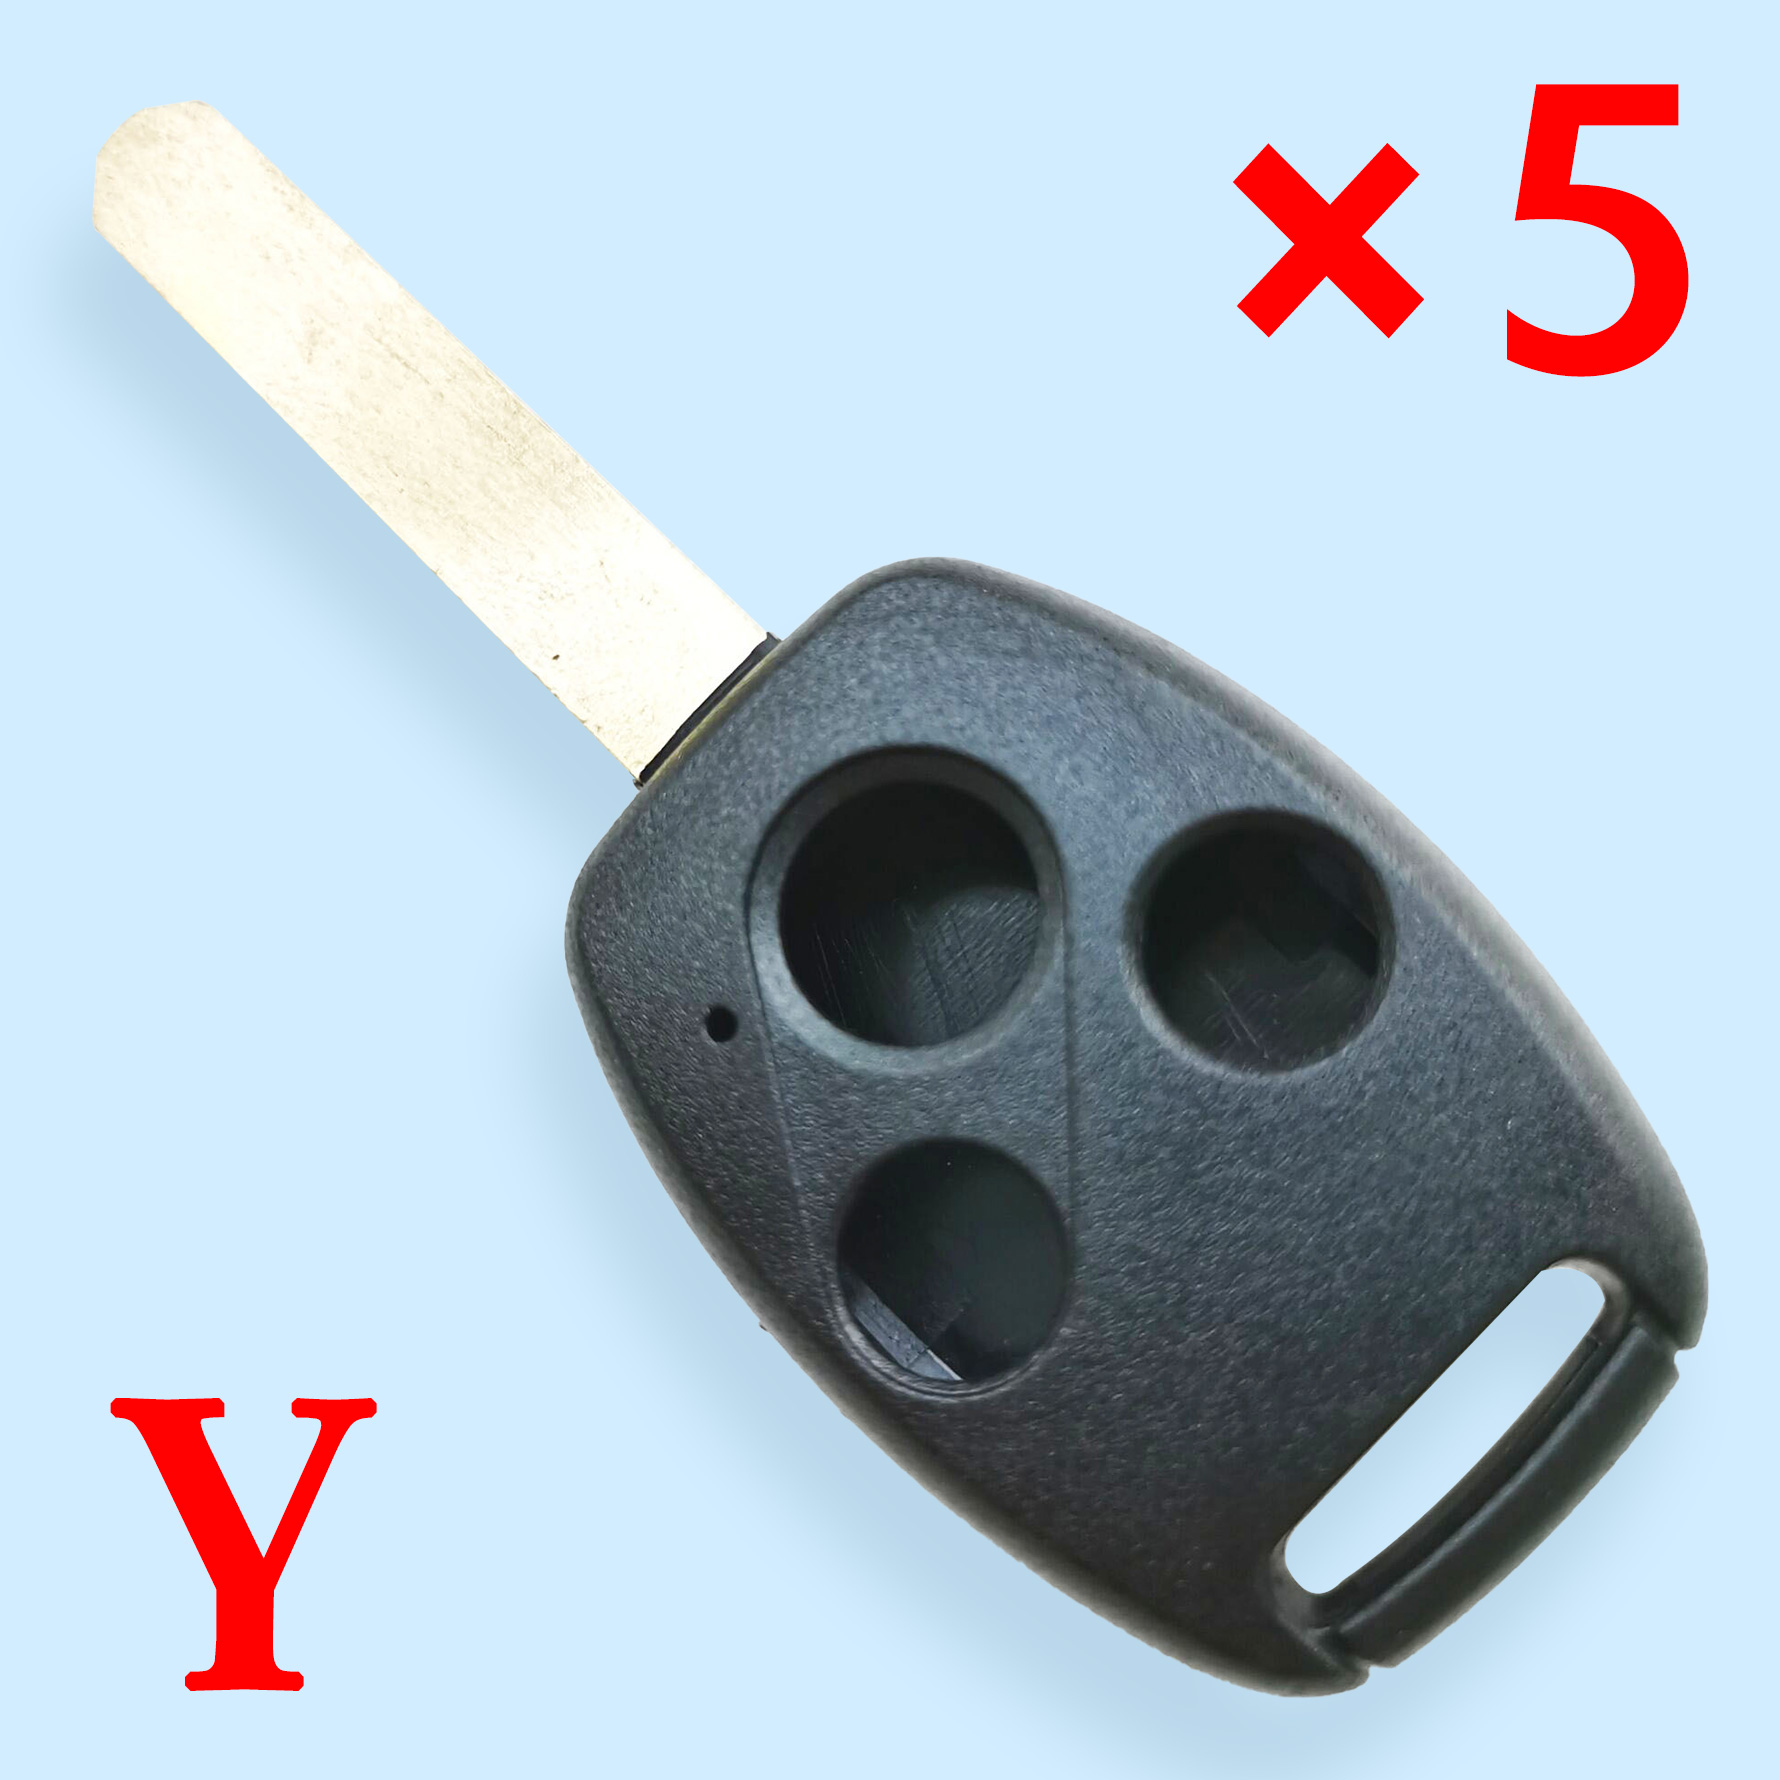 3 Buttons Key Shell with Chip Slot for Honda - Pack of 5